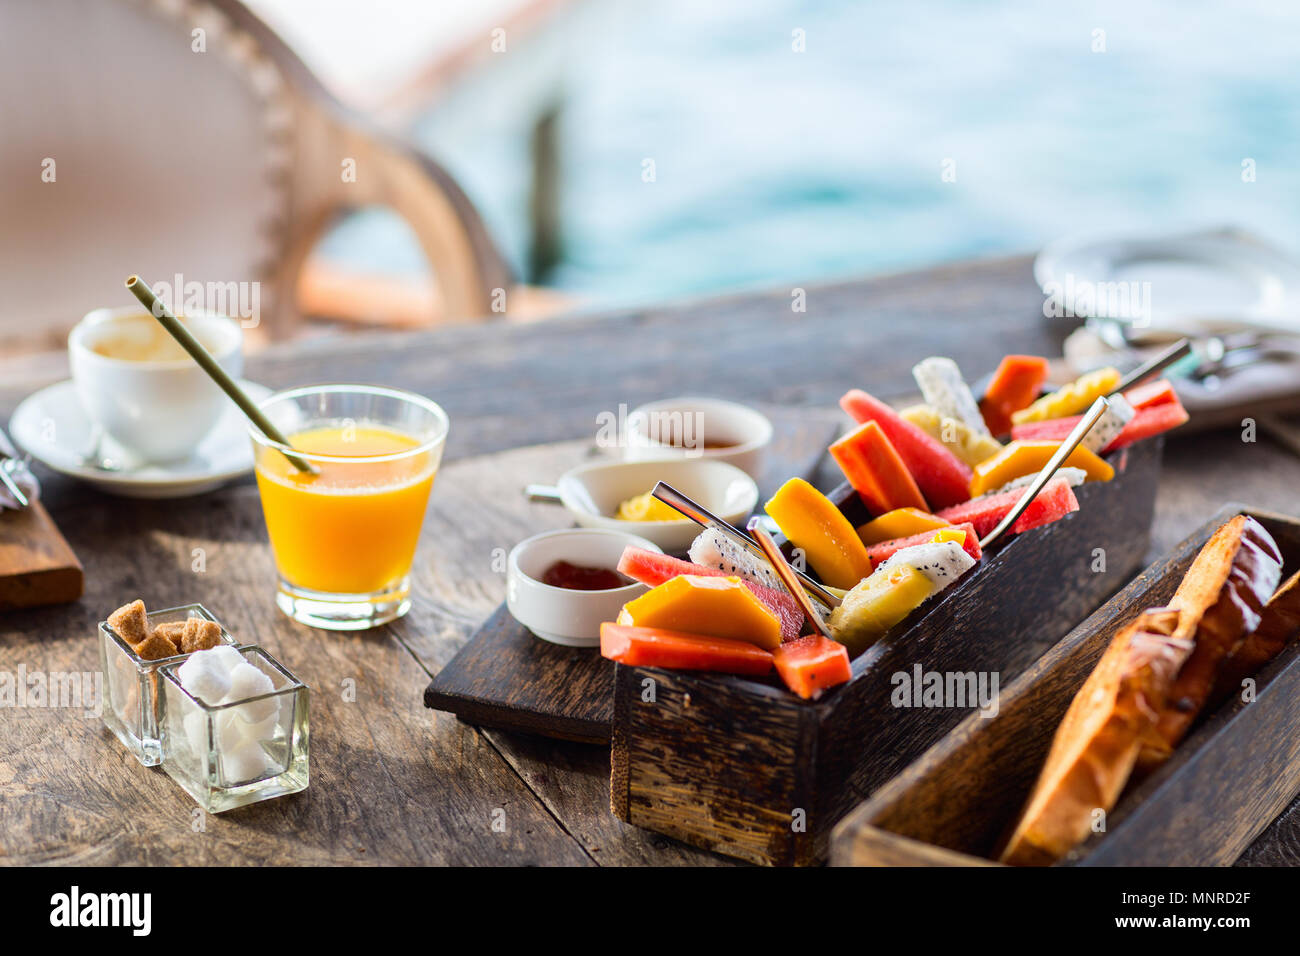 Close up of delicious organic food served for breakfast on rustic wooden table. Fruits,  juice,  bread and jam. Stock Photo